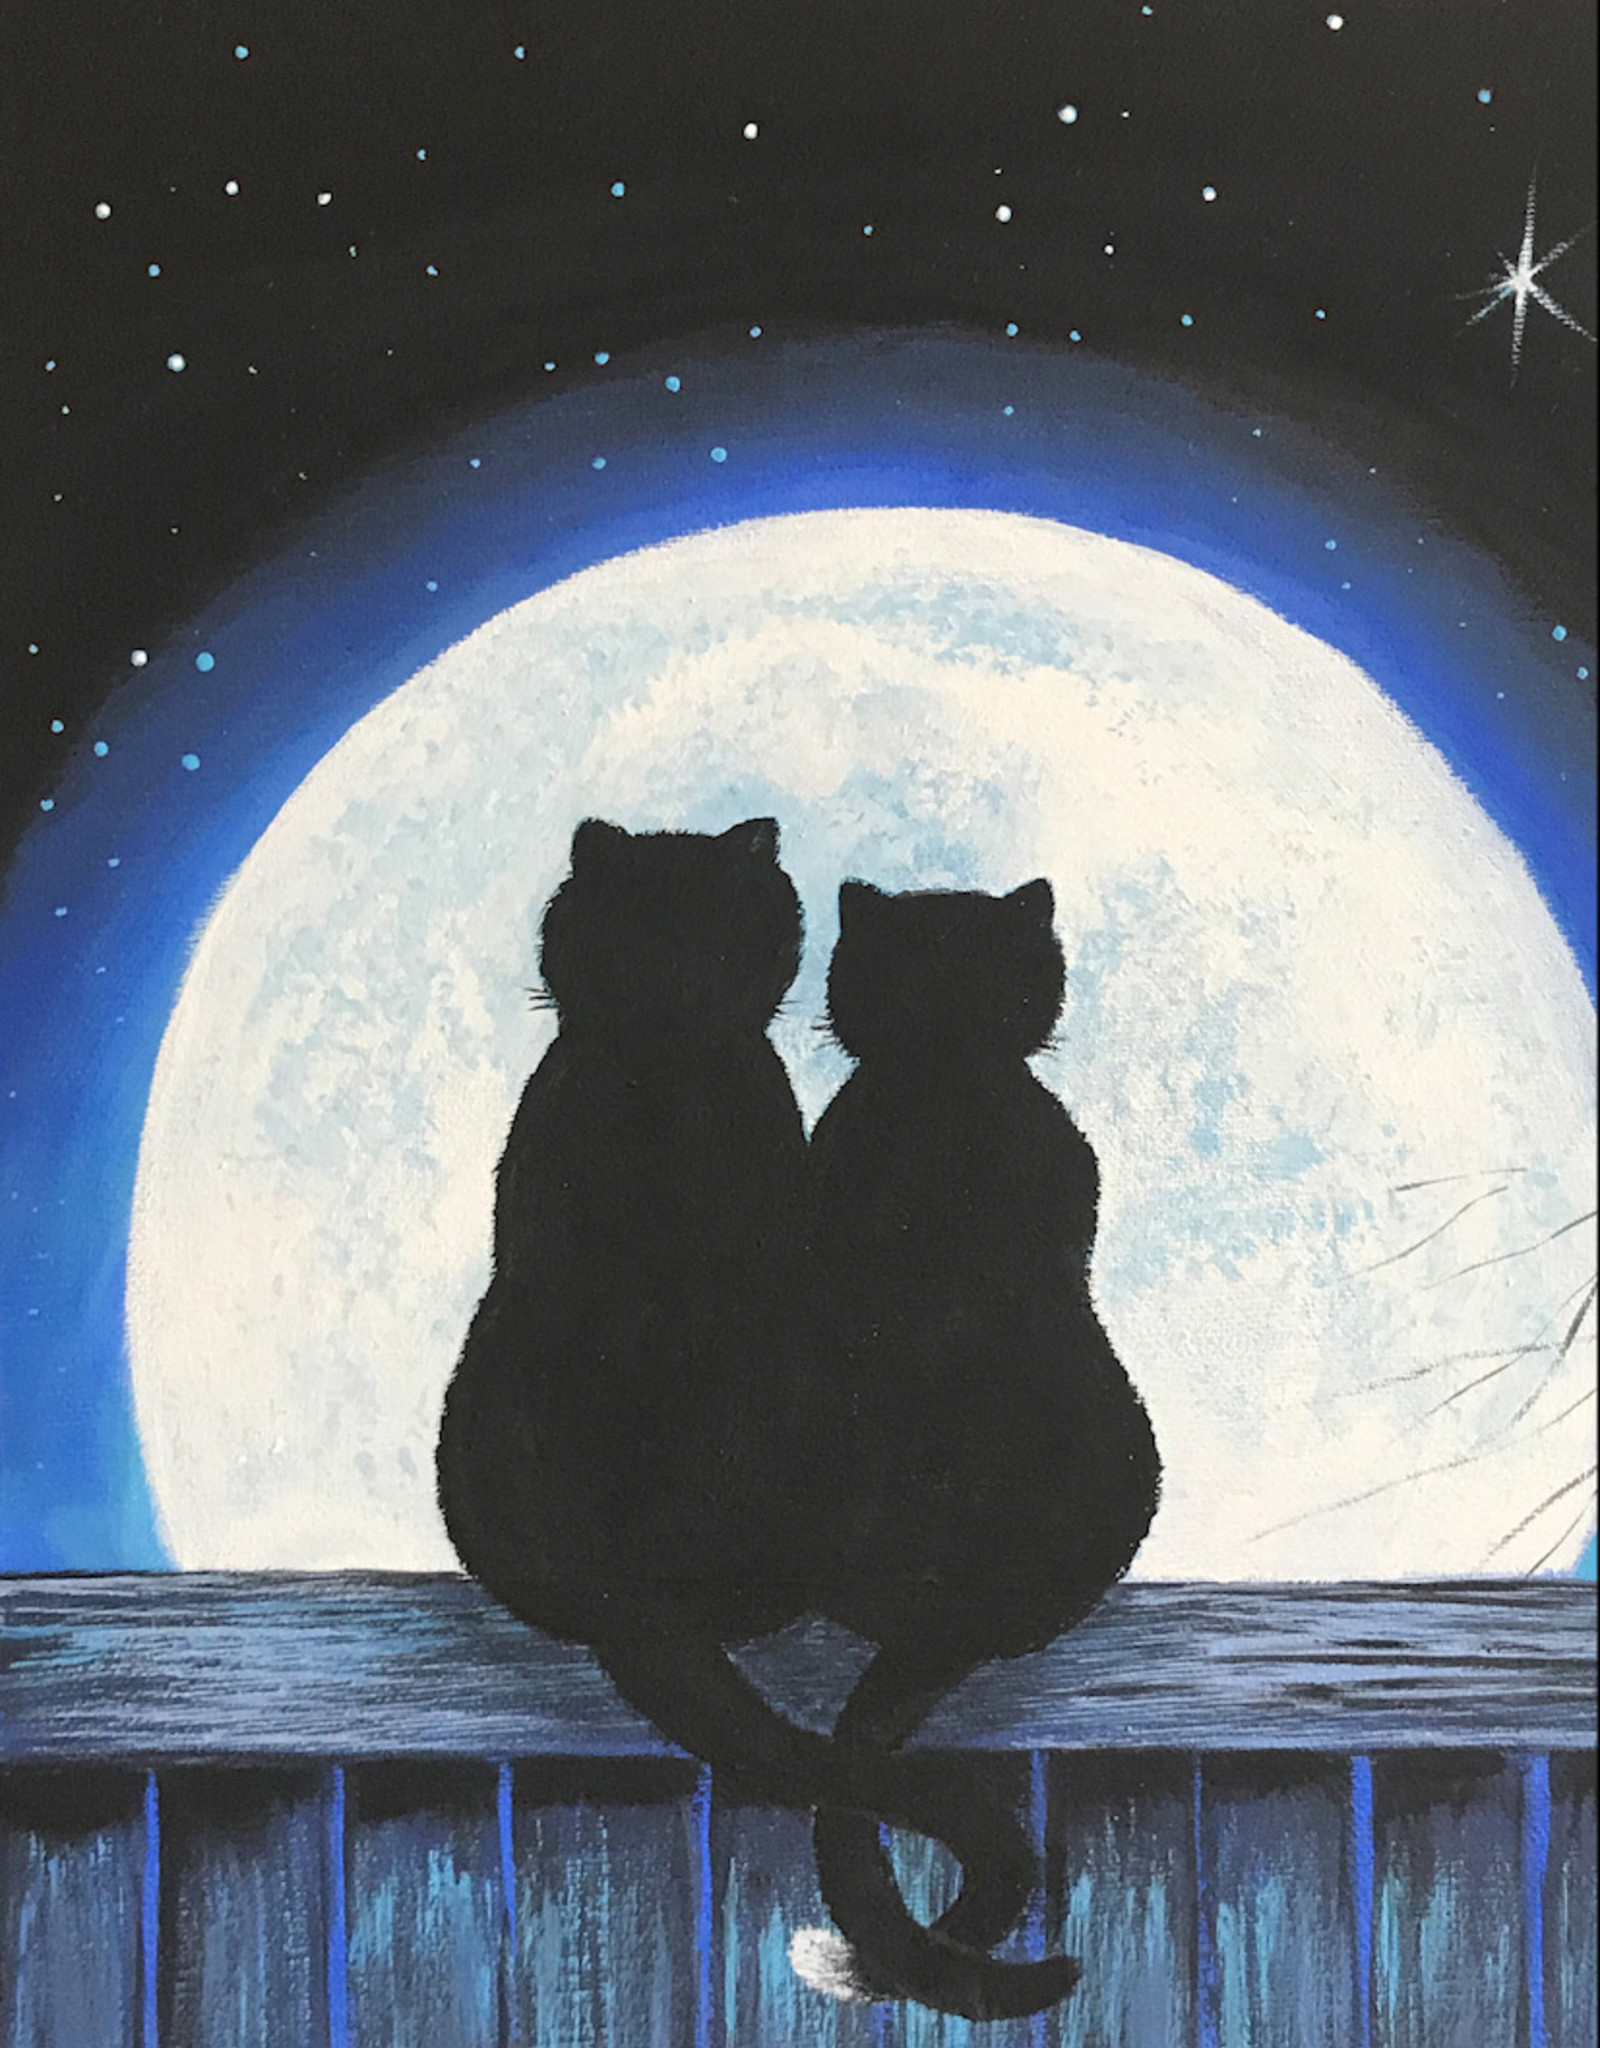 Tamara S Acrylic Art Class Two Cats & a Moon Wed Aug 11 4pm-6pm